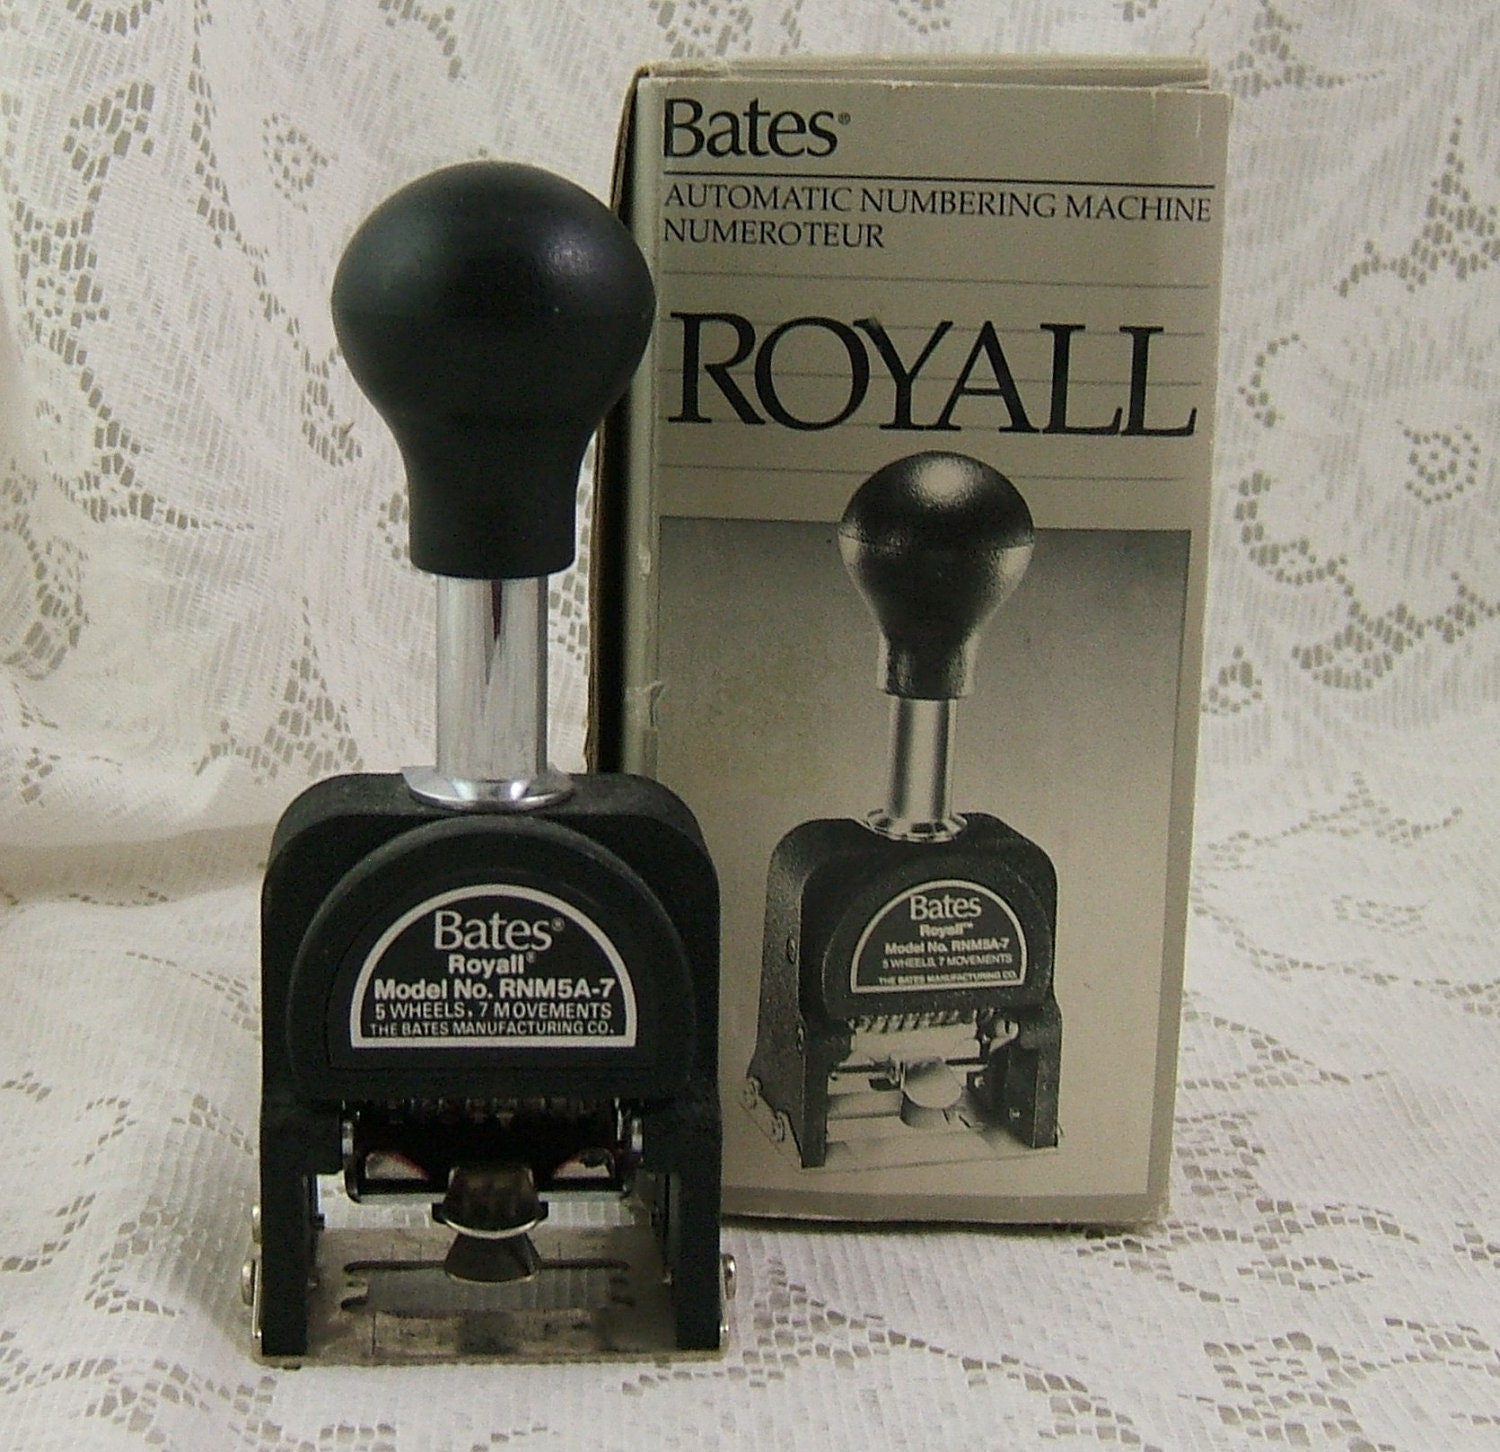 bates automatic numbering machine